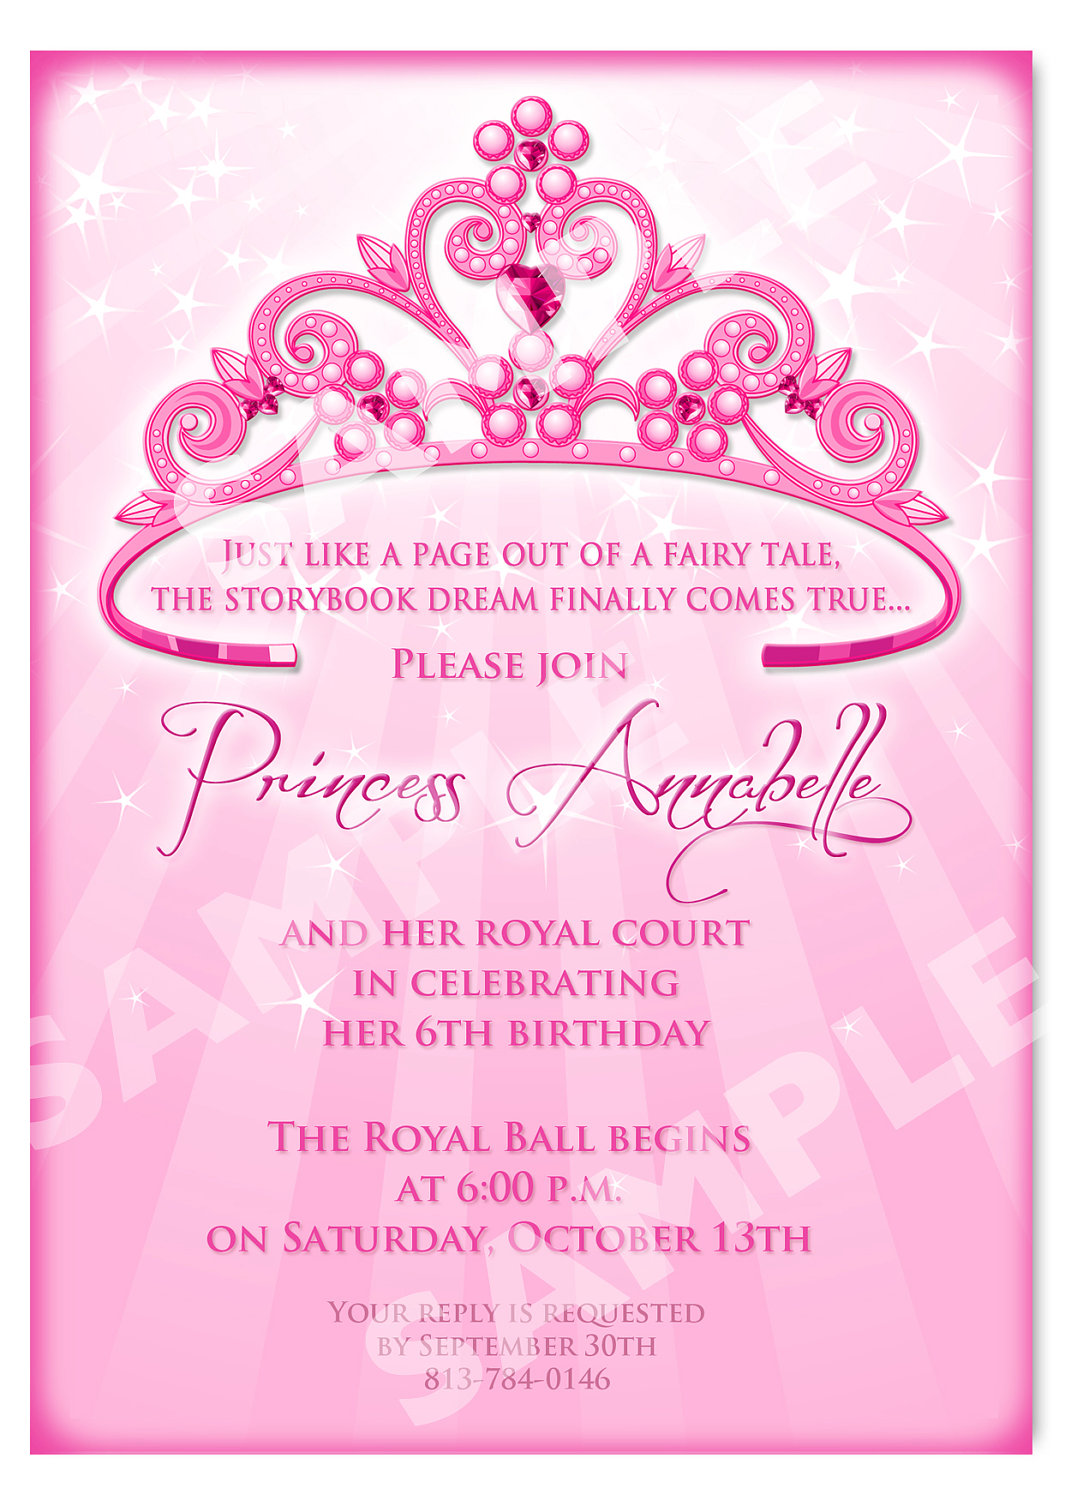 free 1st birthday invitation templates printable ; 57d8aede4ddc1c1285a4c7d978f4ebc6